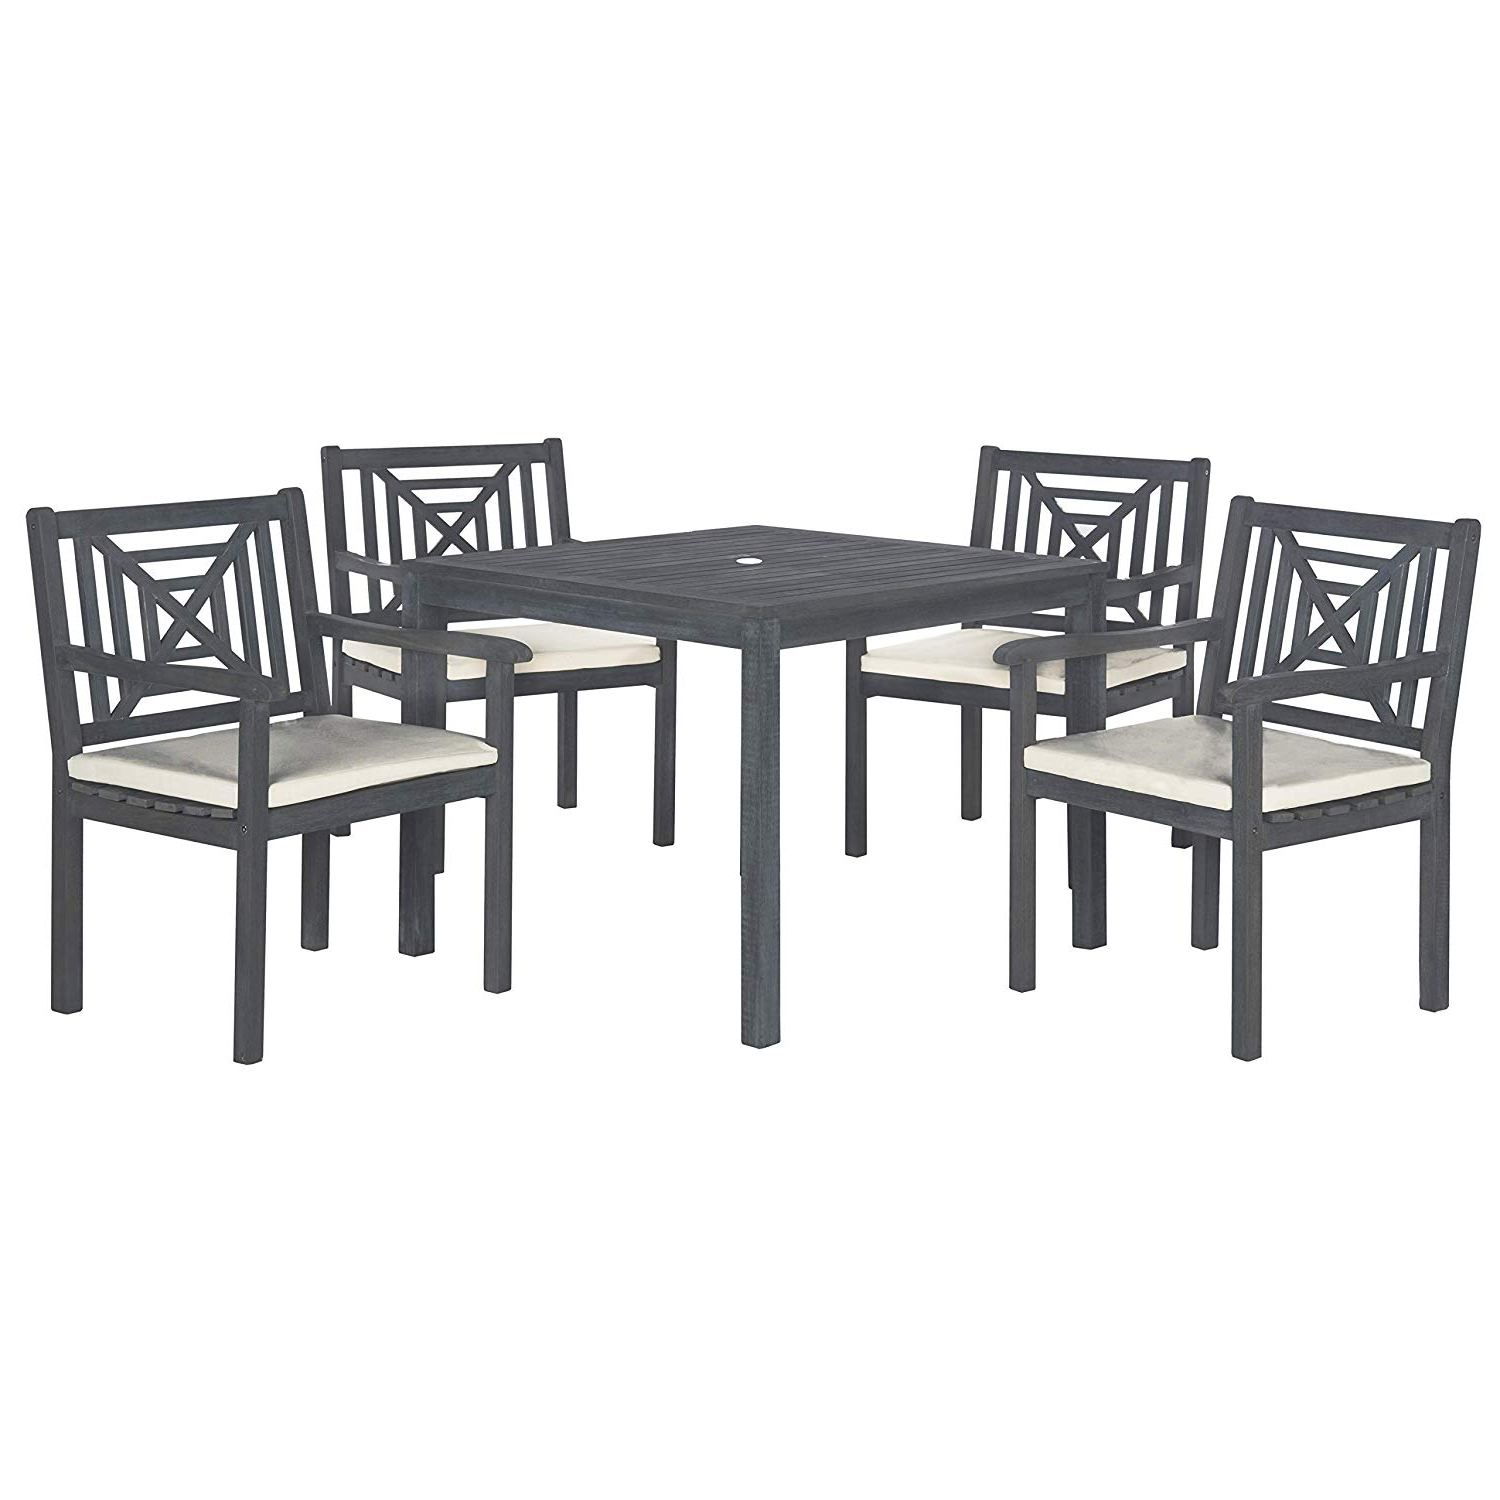 Safavieh Outdoor Living Collection Del Mar 5 Piece Dining Set, Ash Grey For Favorite Delmar 5 Piece Dining Sets (View 5 of 20)